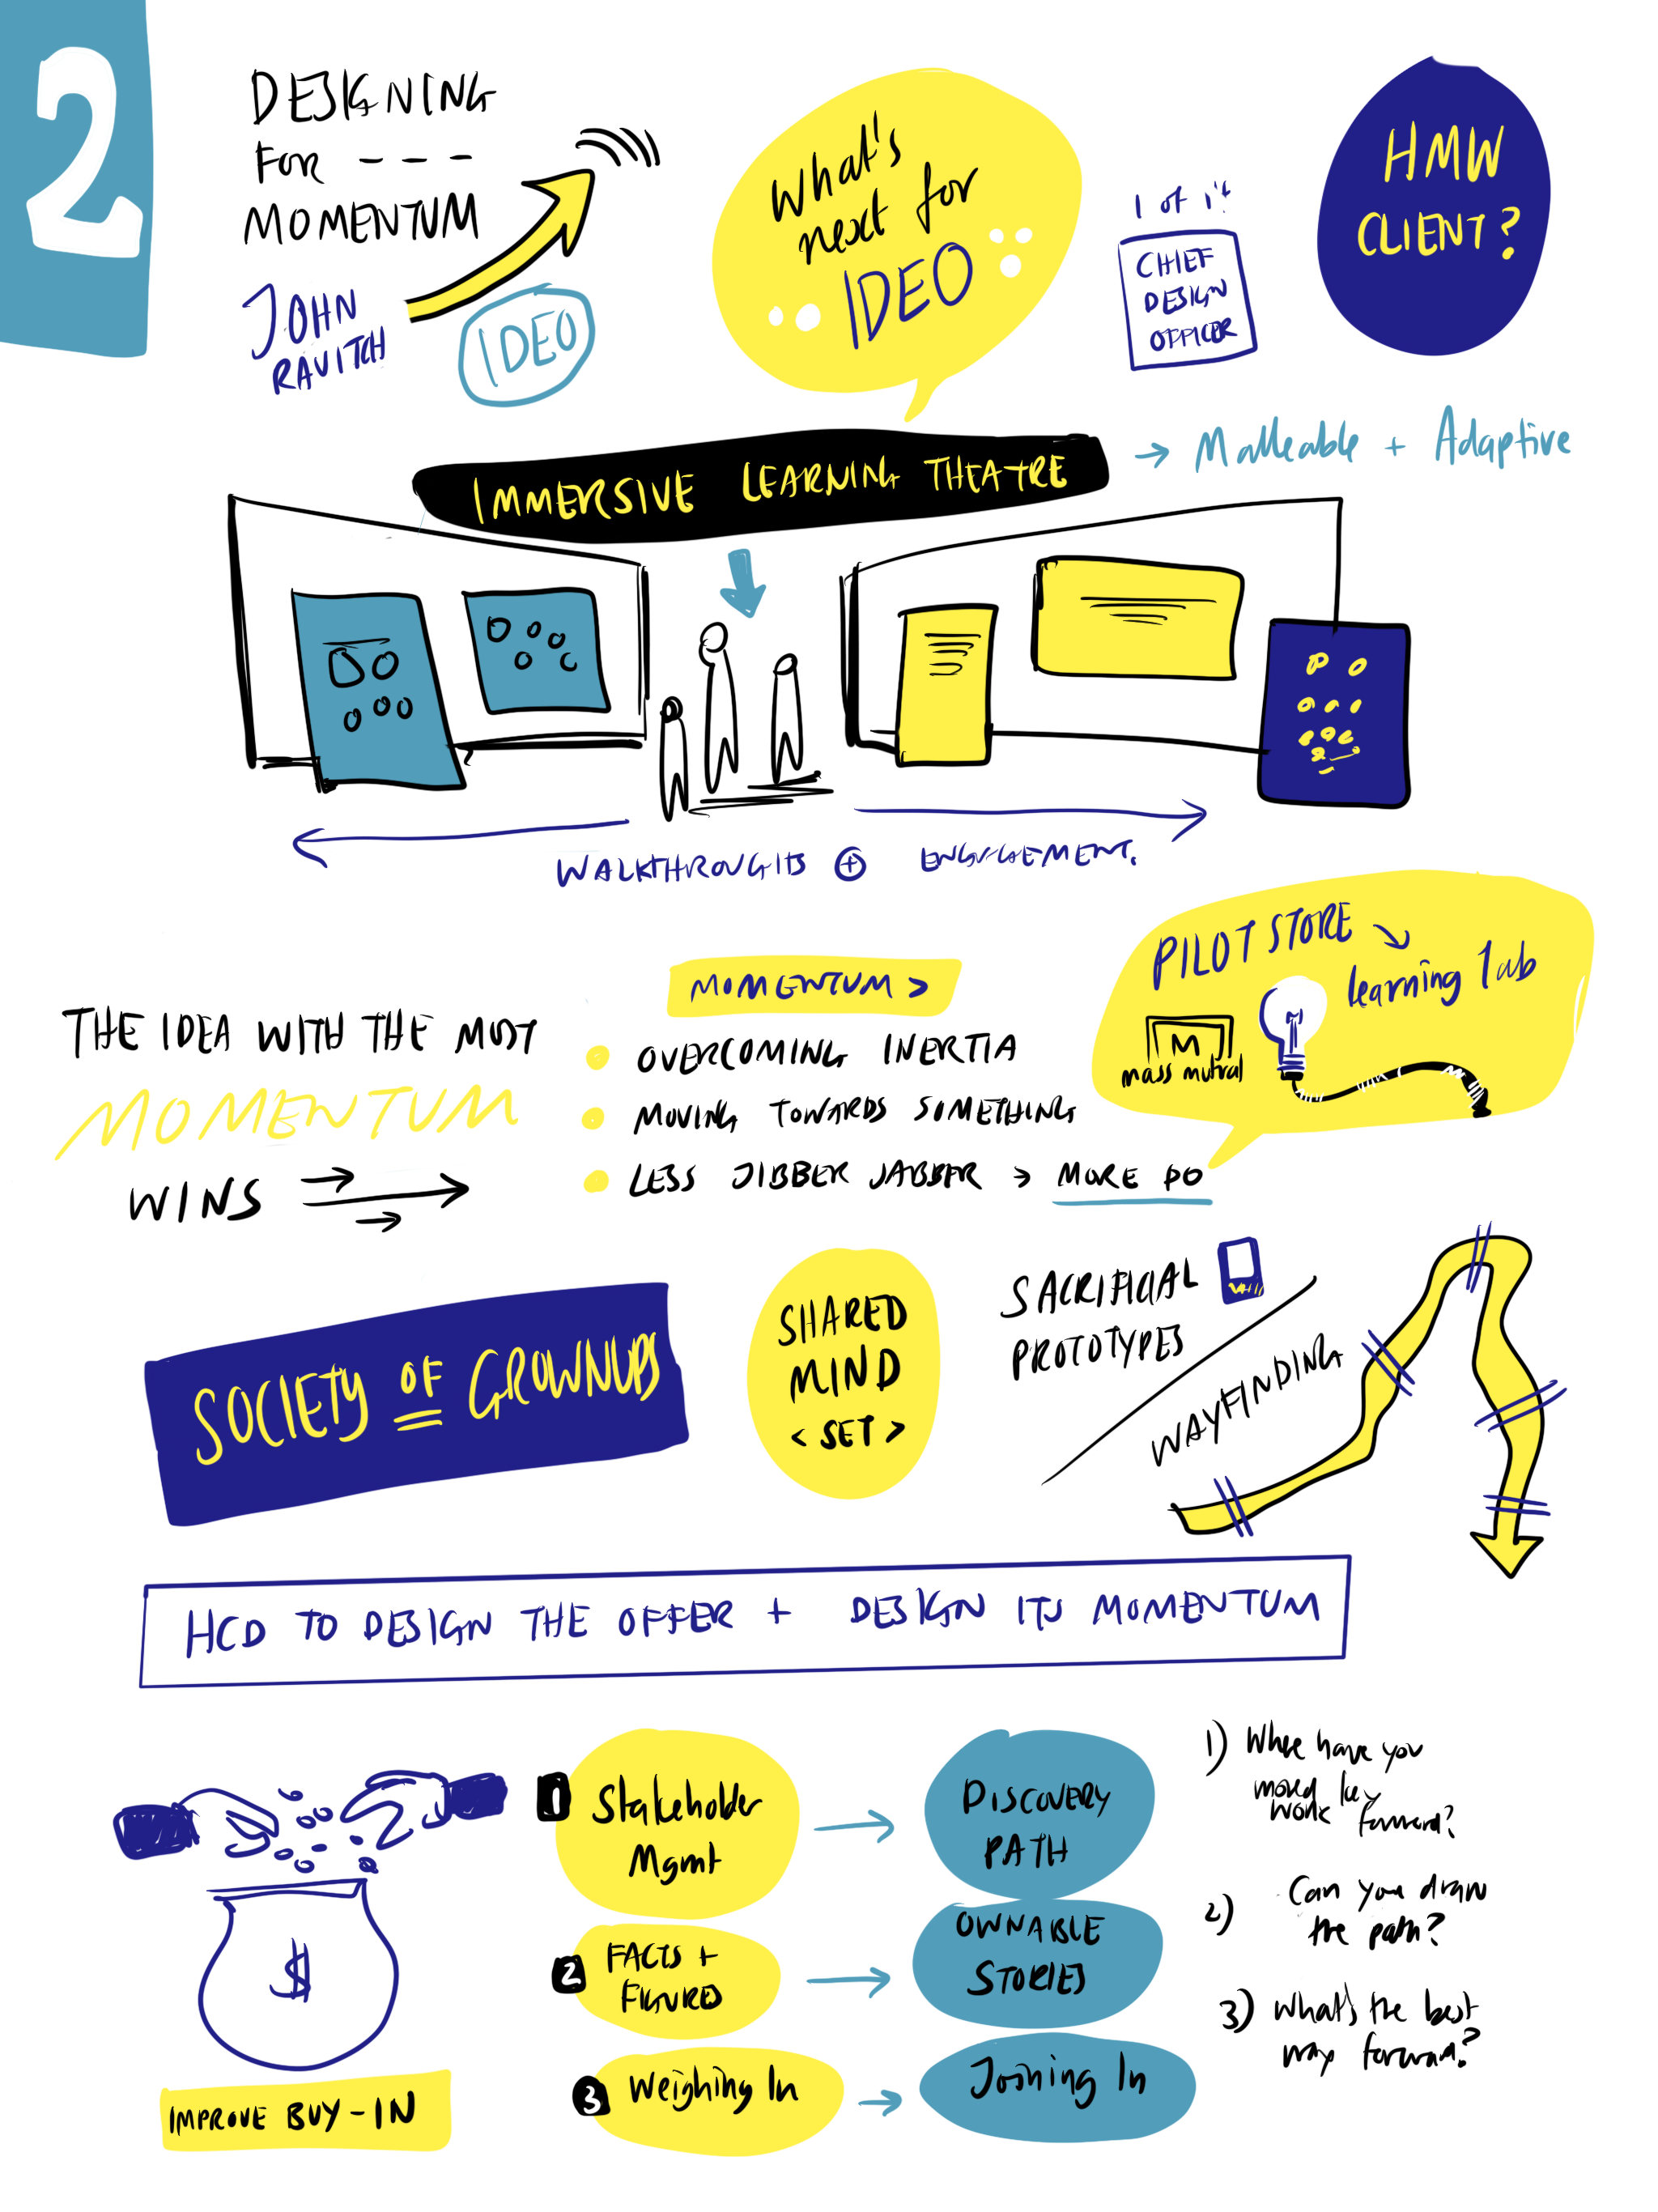 SDNOW 3 - Sketchnotes from the Service Design Now 3 Conference